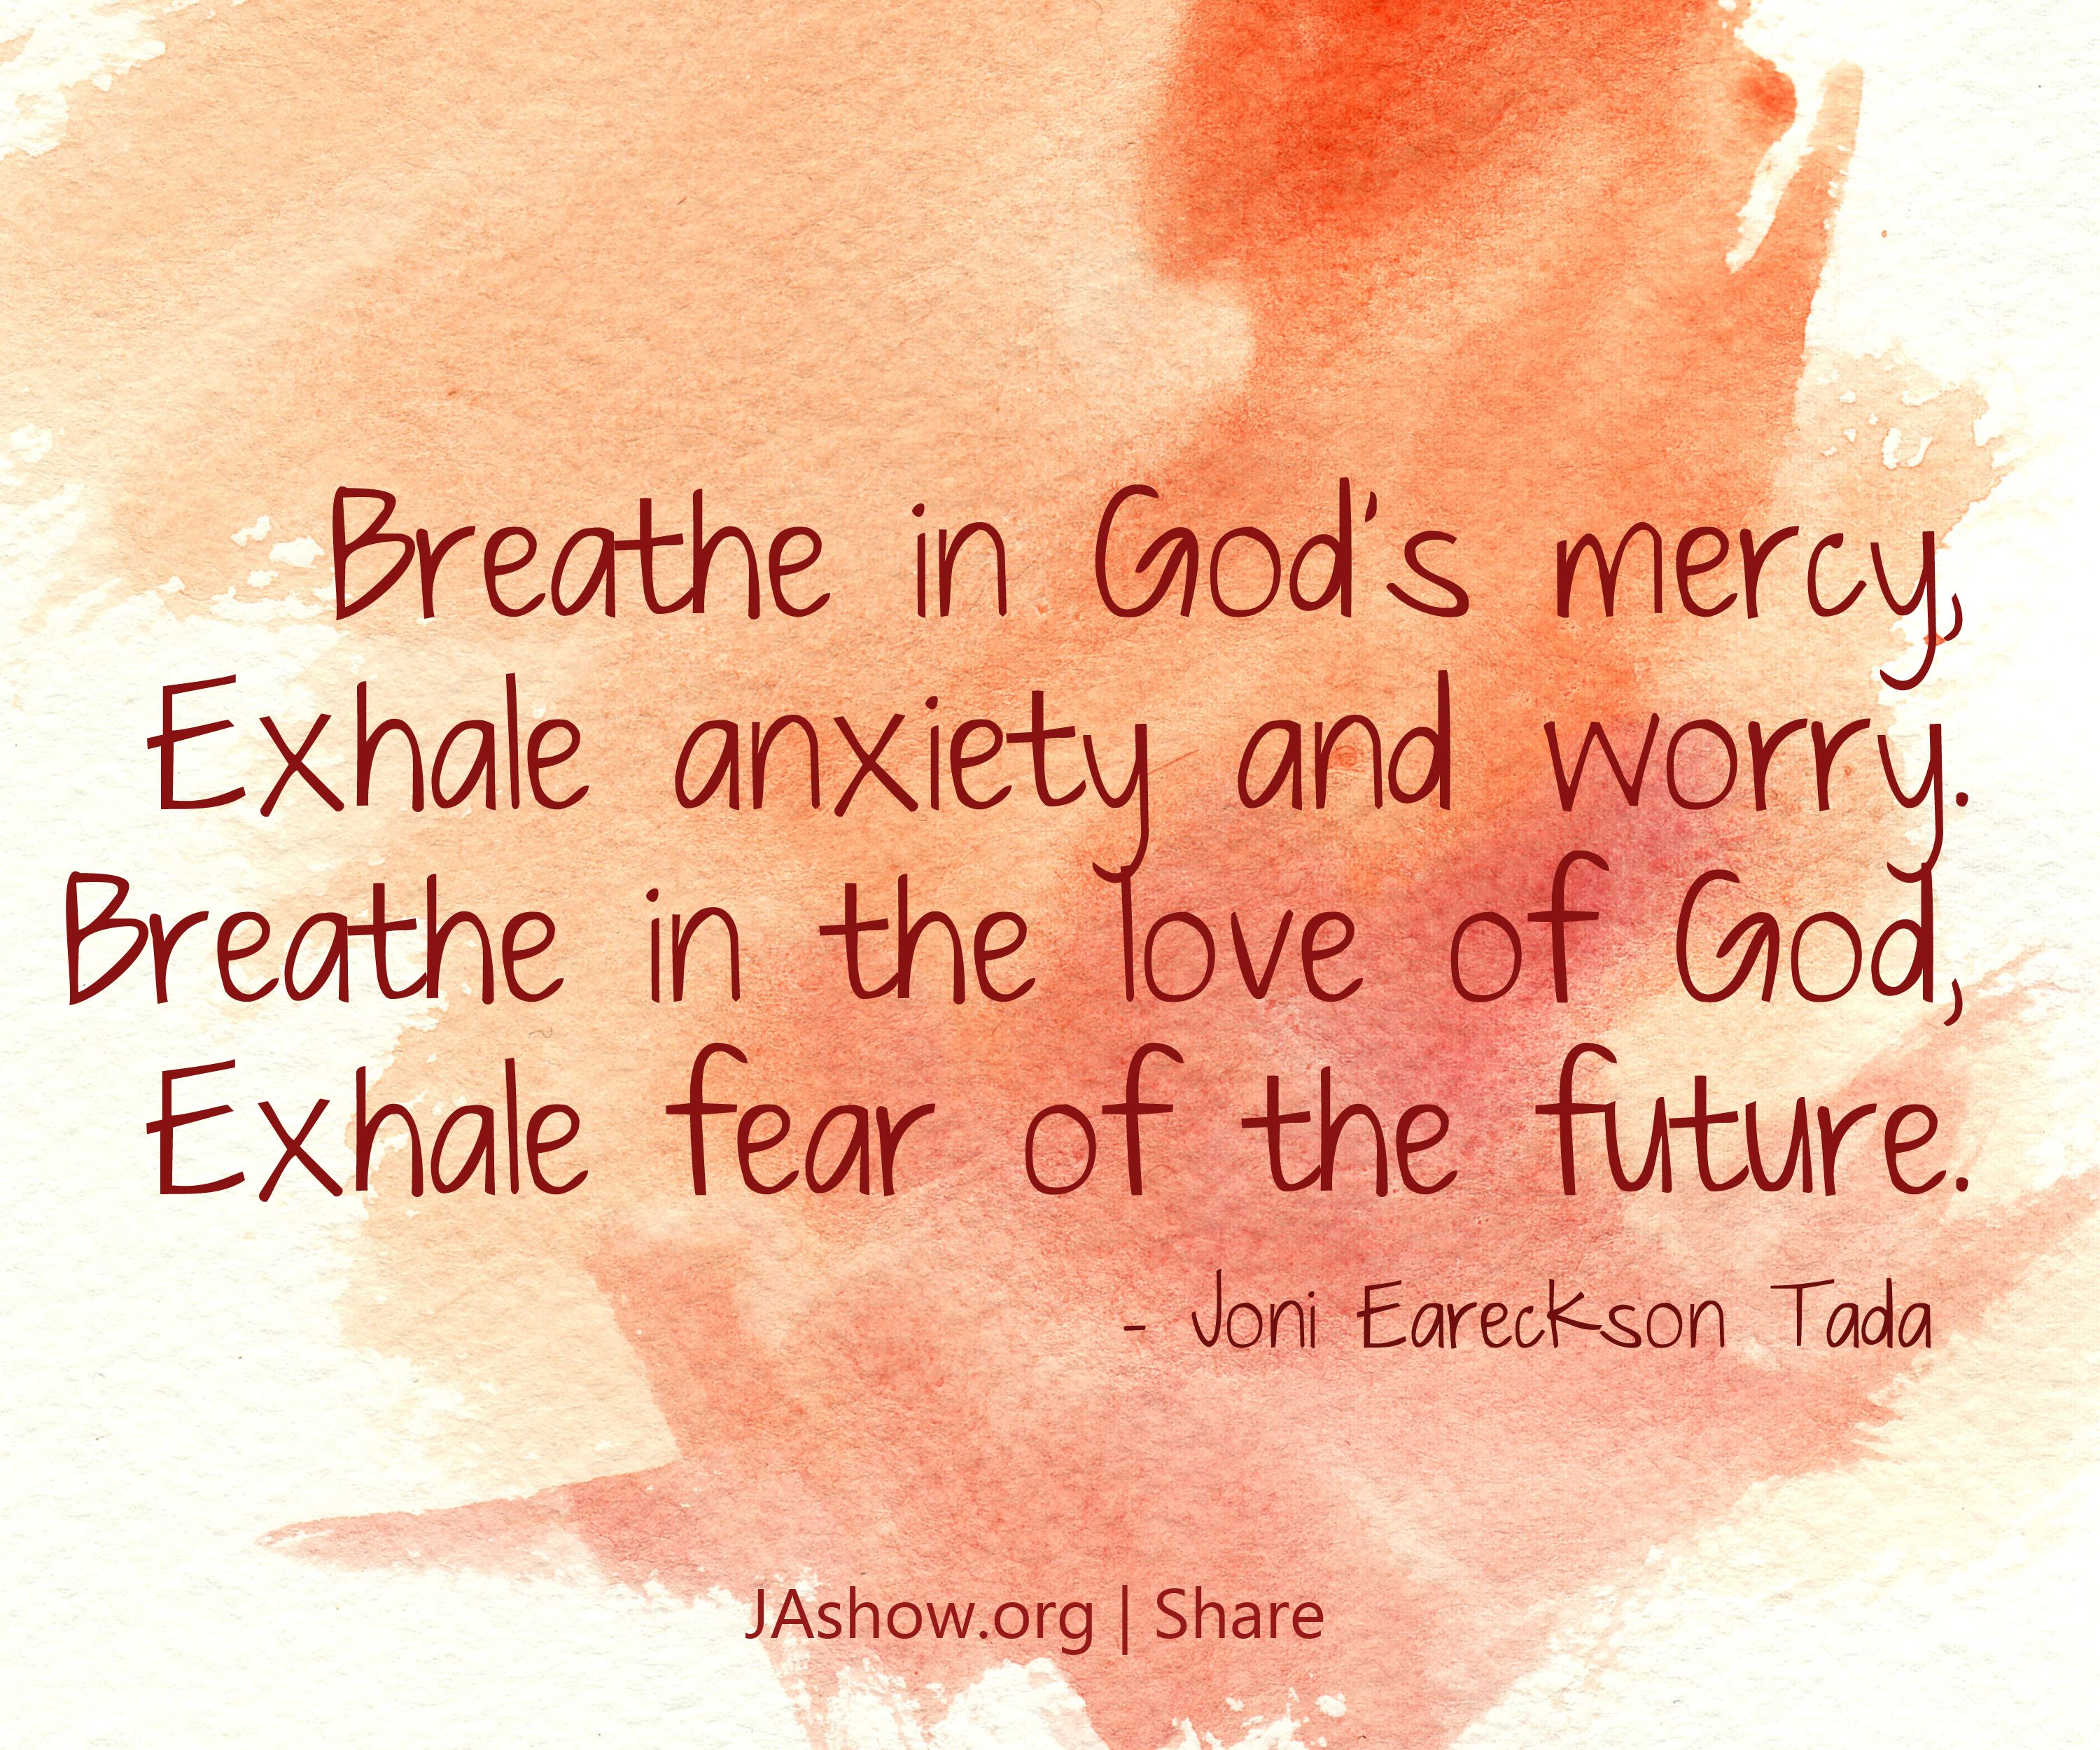 Breathe in God s mercy exhale anxiety and worry Breathe in the love of God